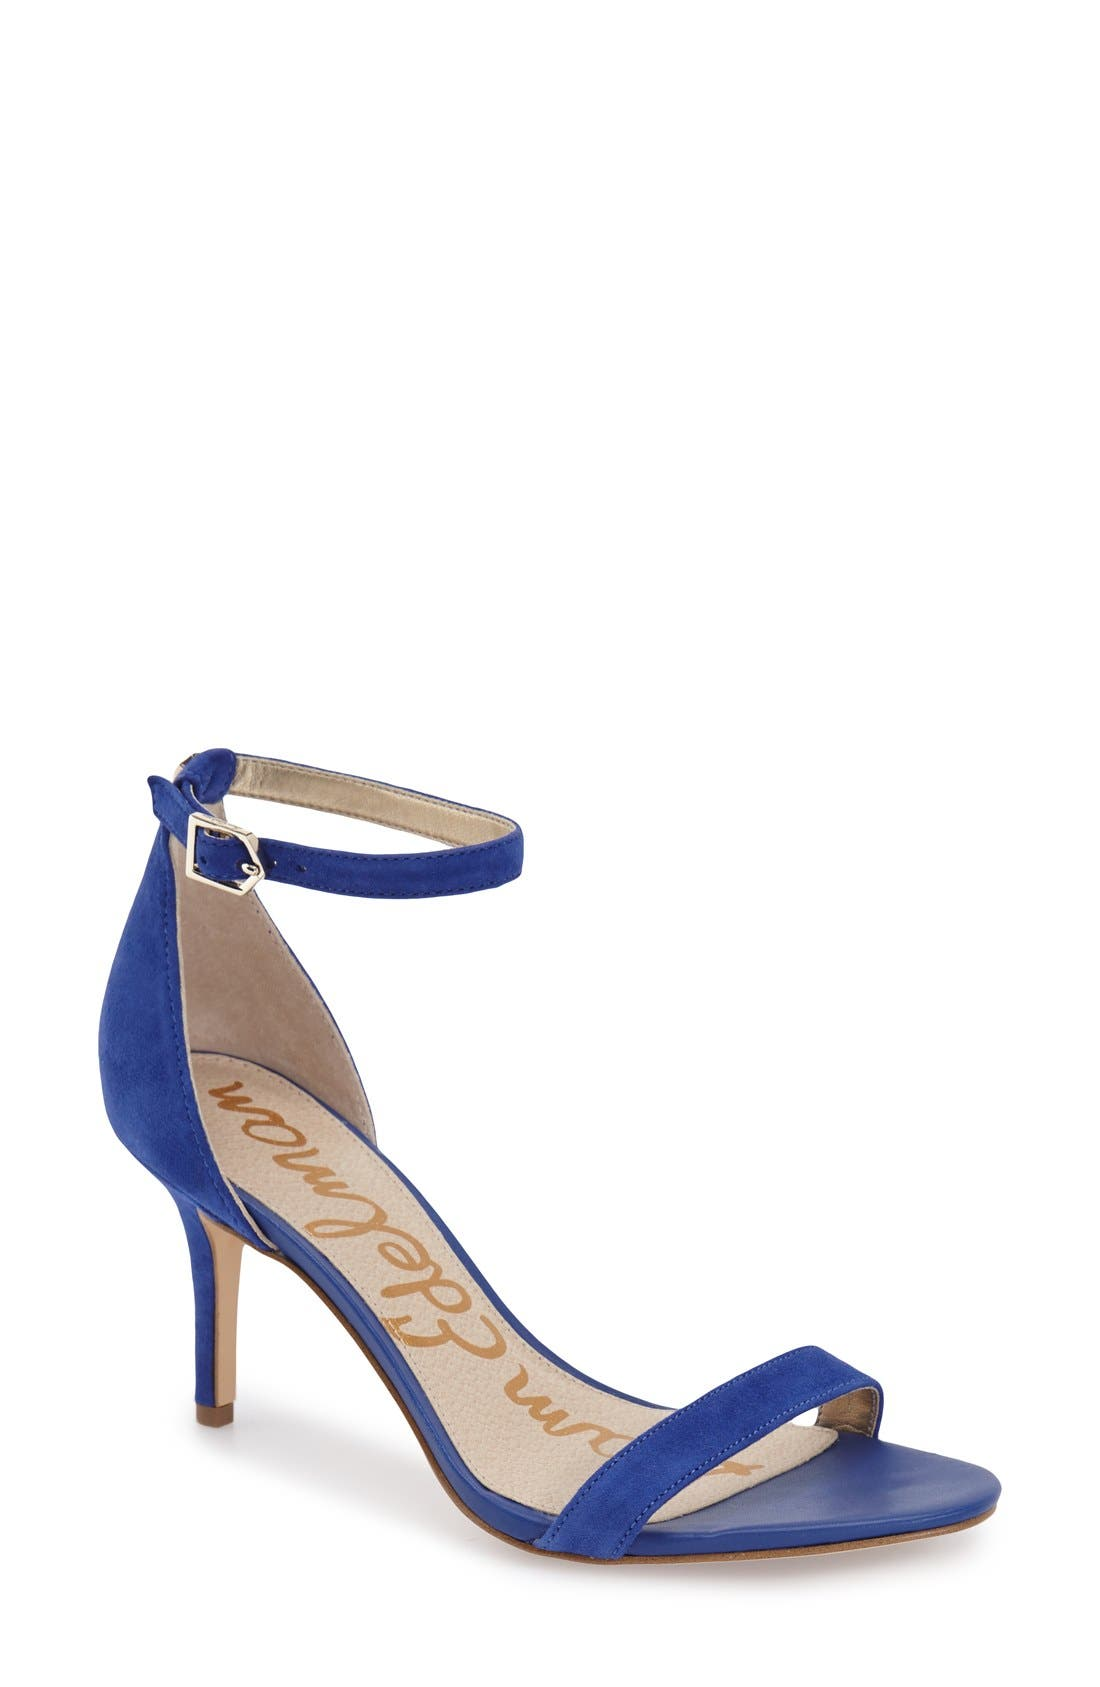 Alternate Image 1 Selected - Sam Edelman 'Patti' Ankle Strap Sandal (Women)